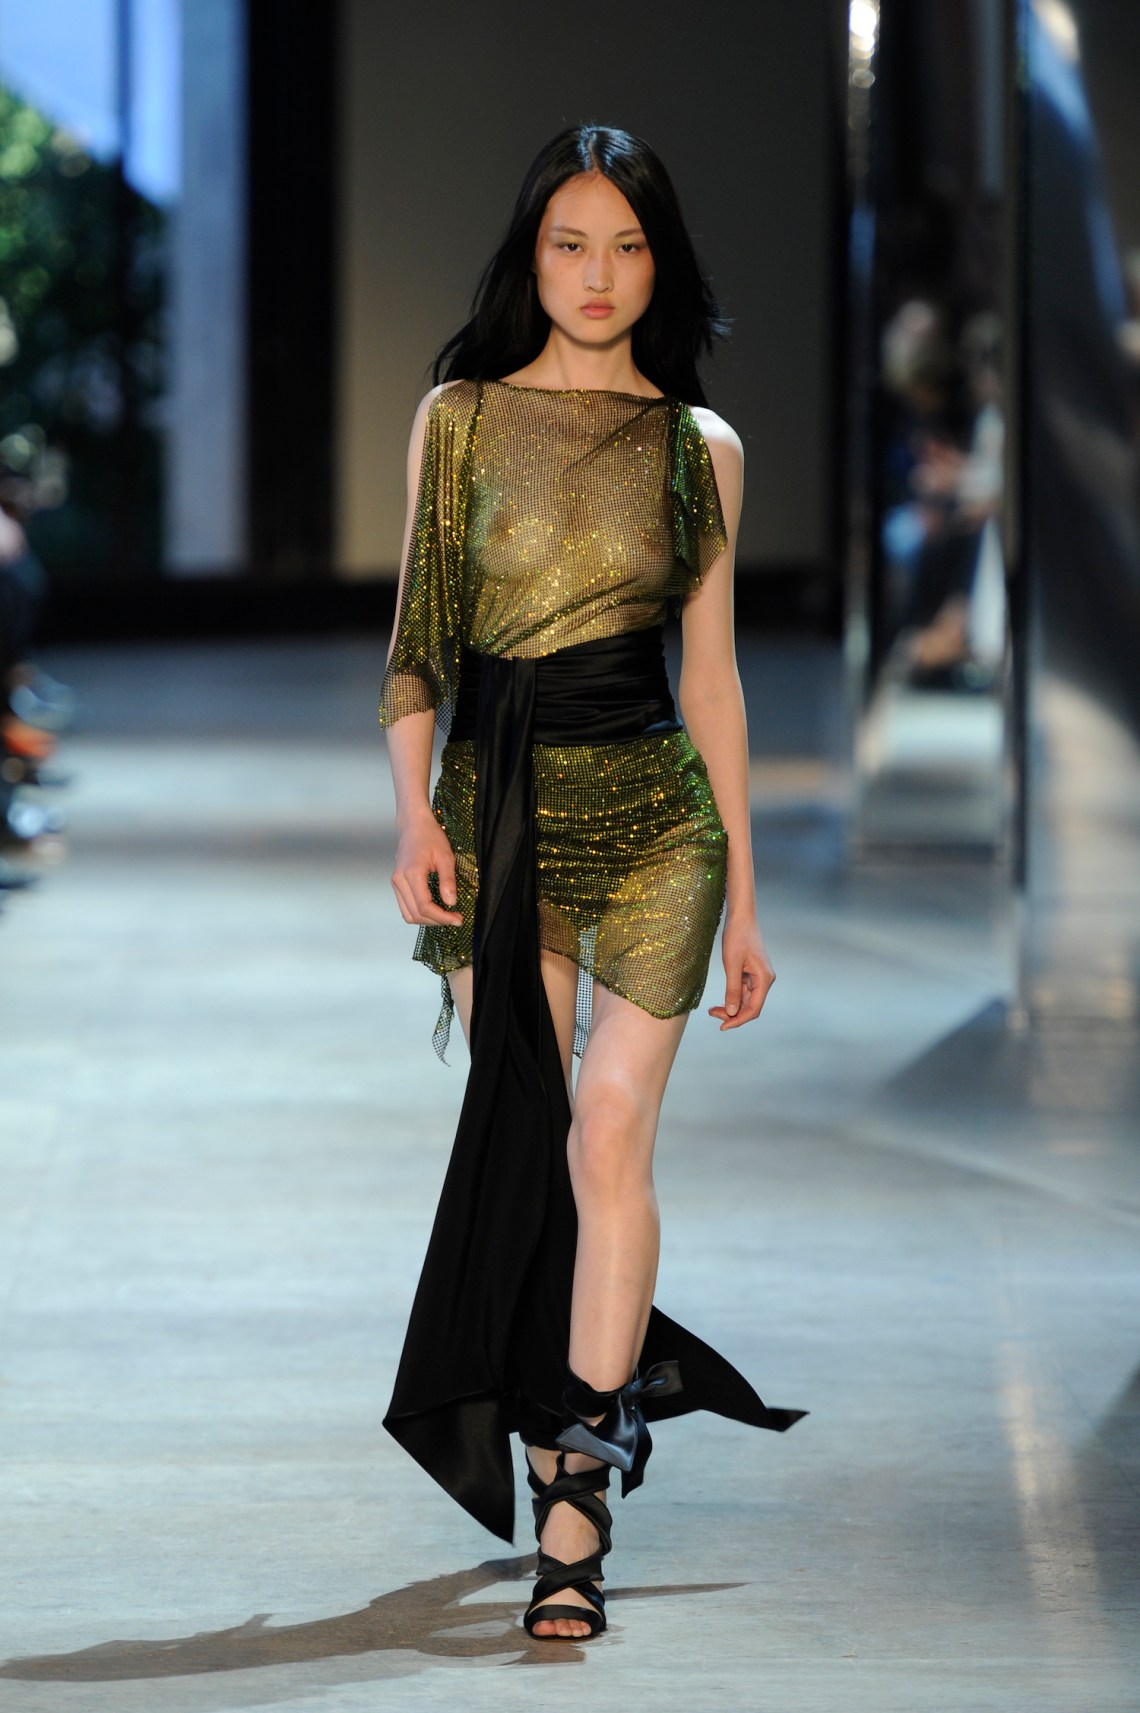 ALEXADRE VAUTHIER HAUTE COUTURE - Fall Winter 2016/17